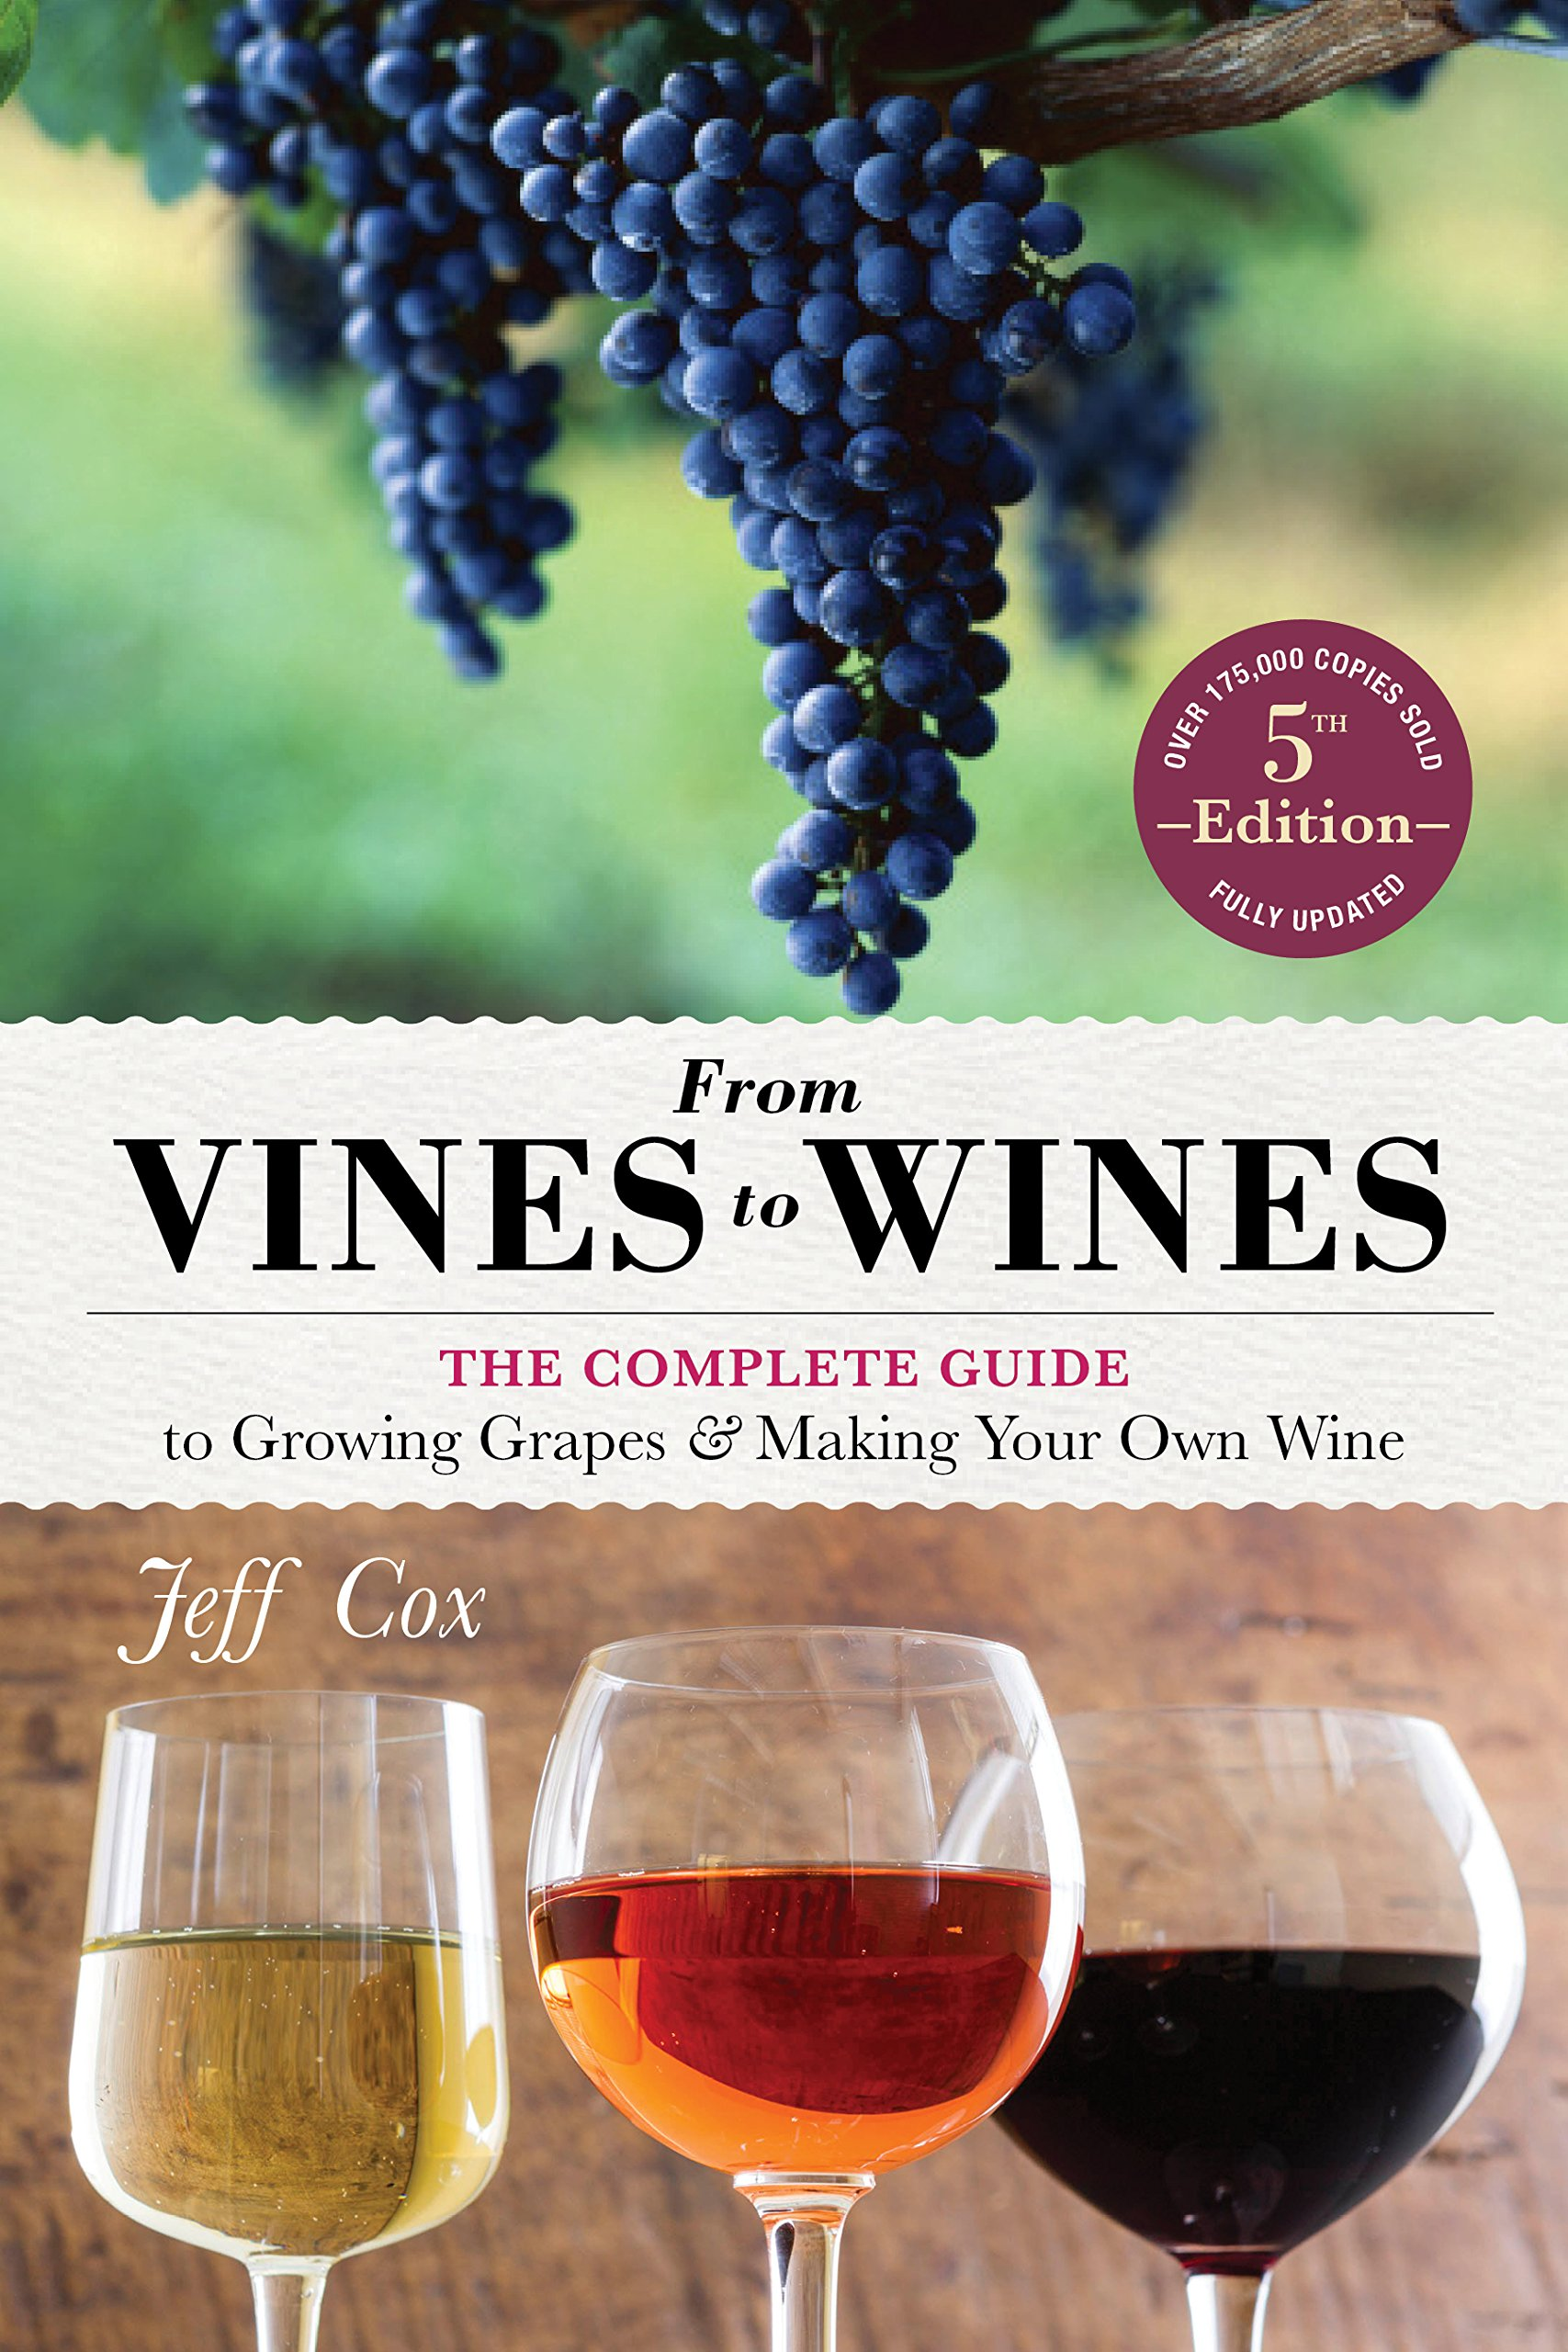 How to make wine without grapes